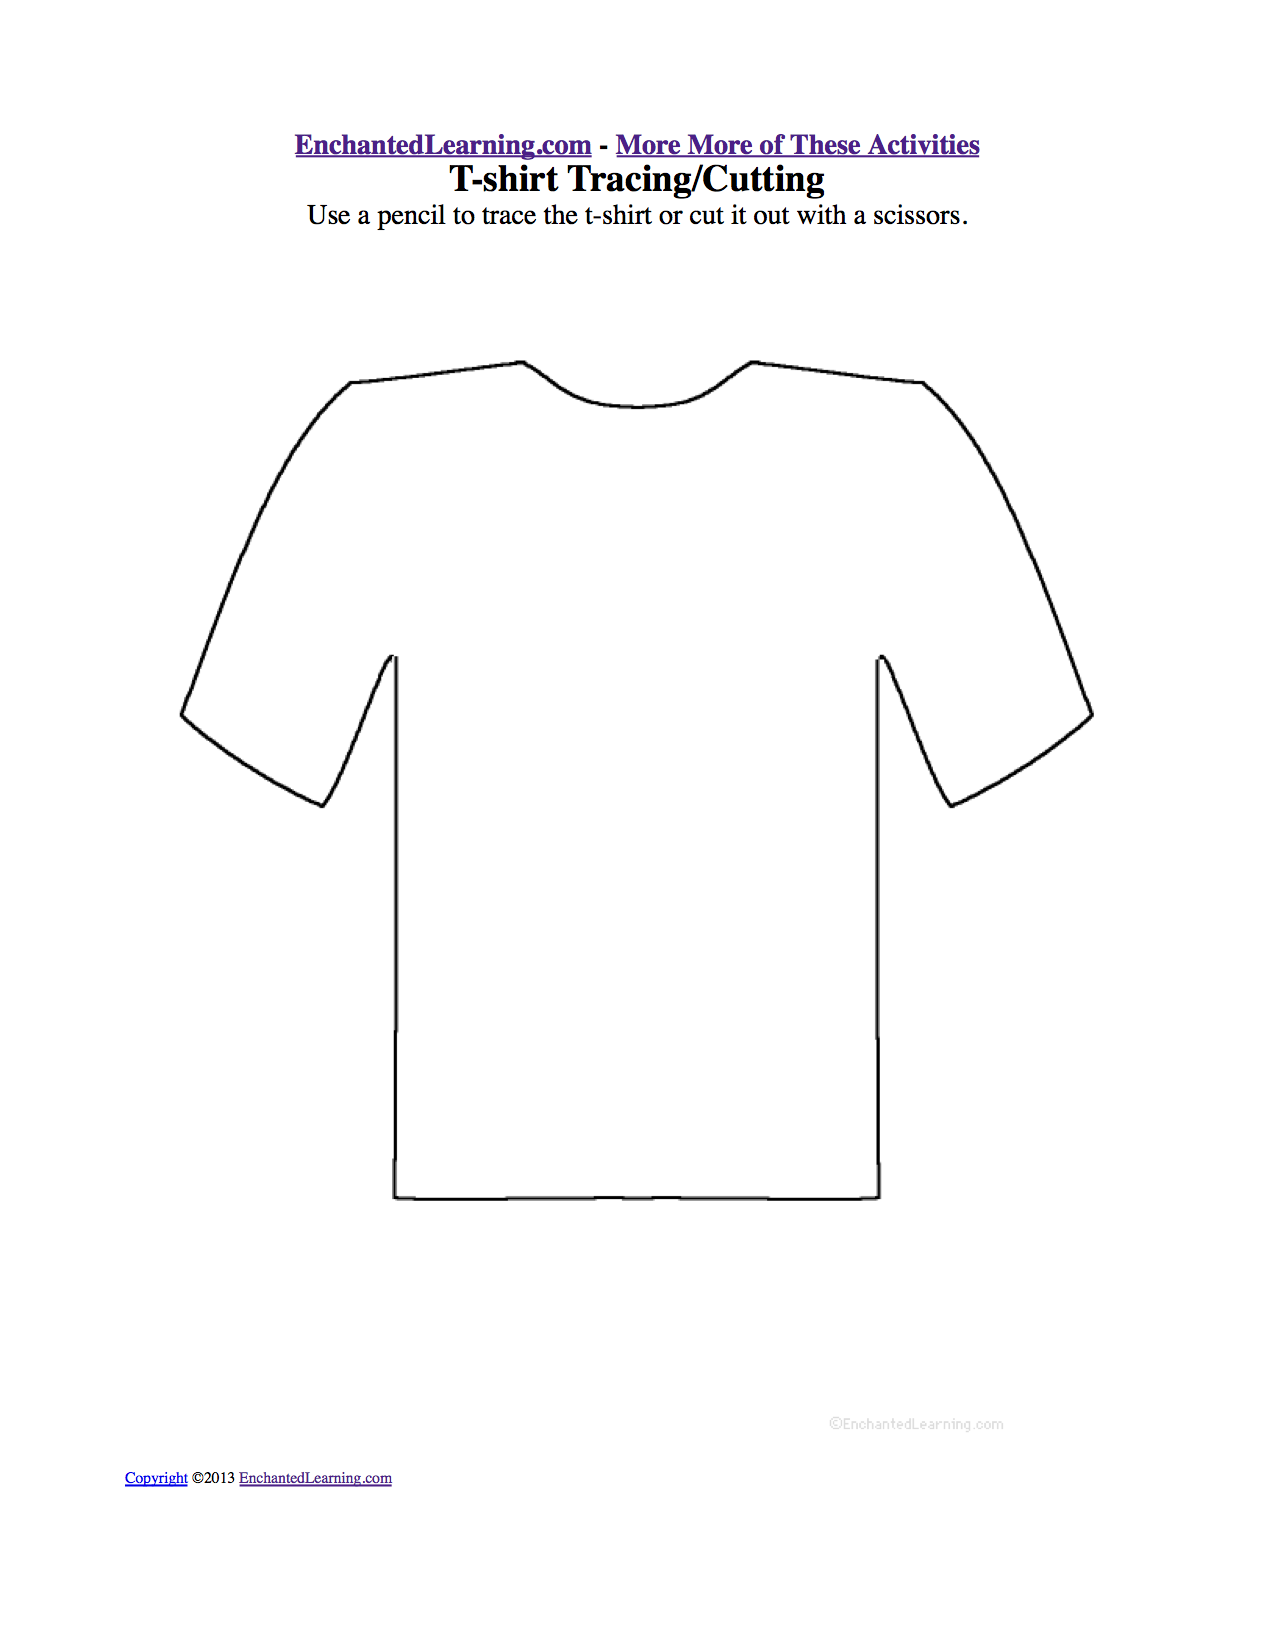 Articles Of Clothing Worksheet Moreover Worksheet Bahasa Melayu ...